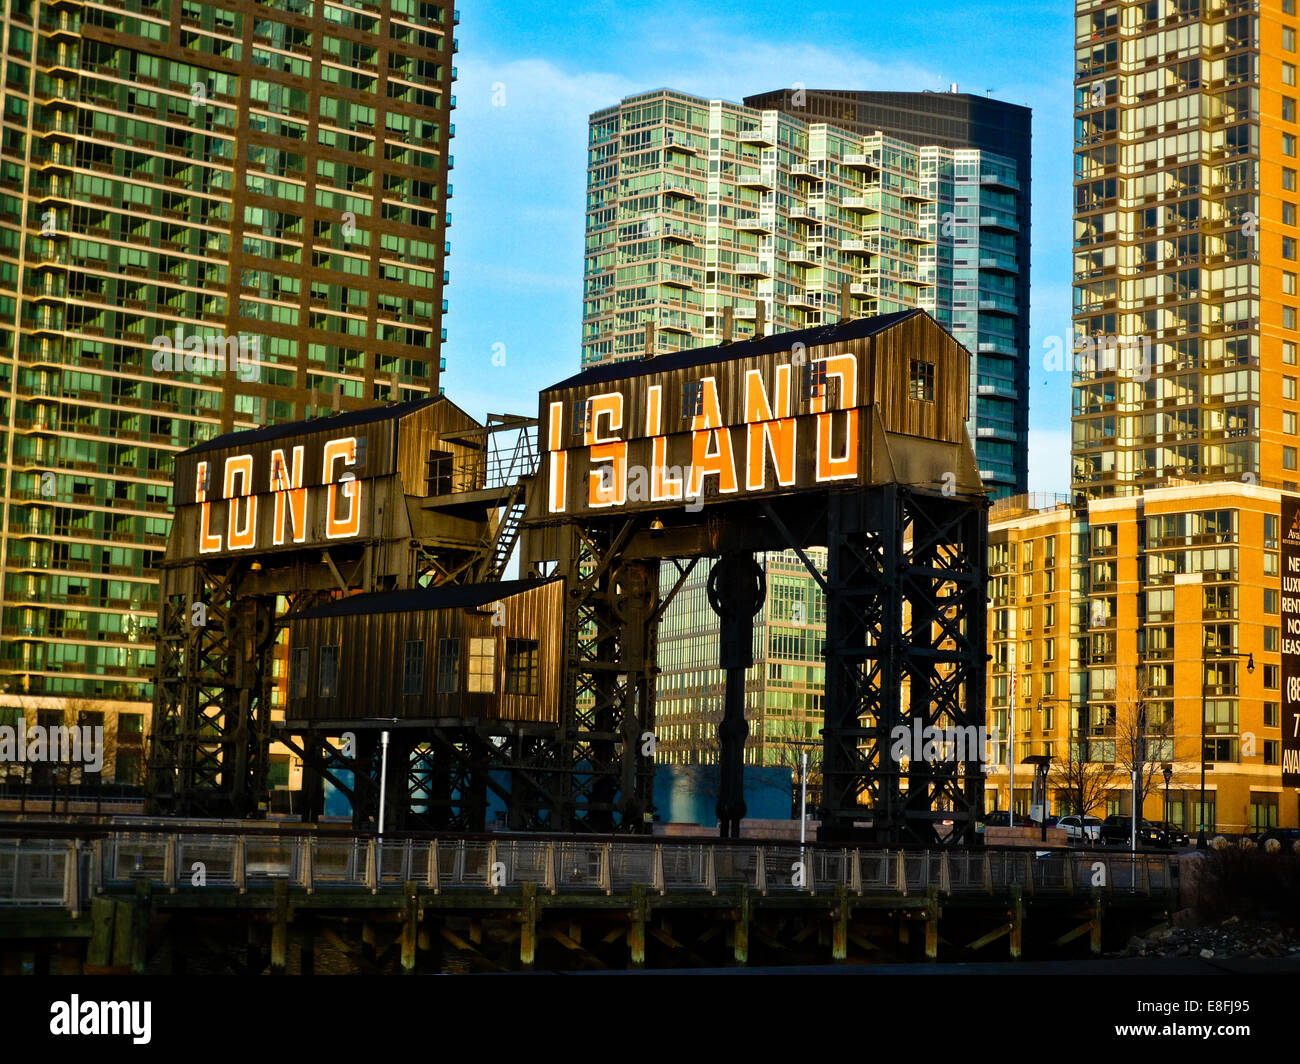 USA, New York City, Queens, Long Island City, Blick auf Queens - Midtown Tunnel Stockbild